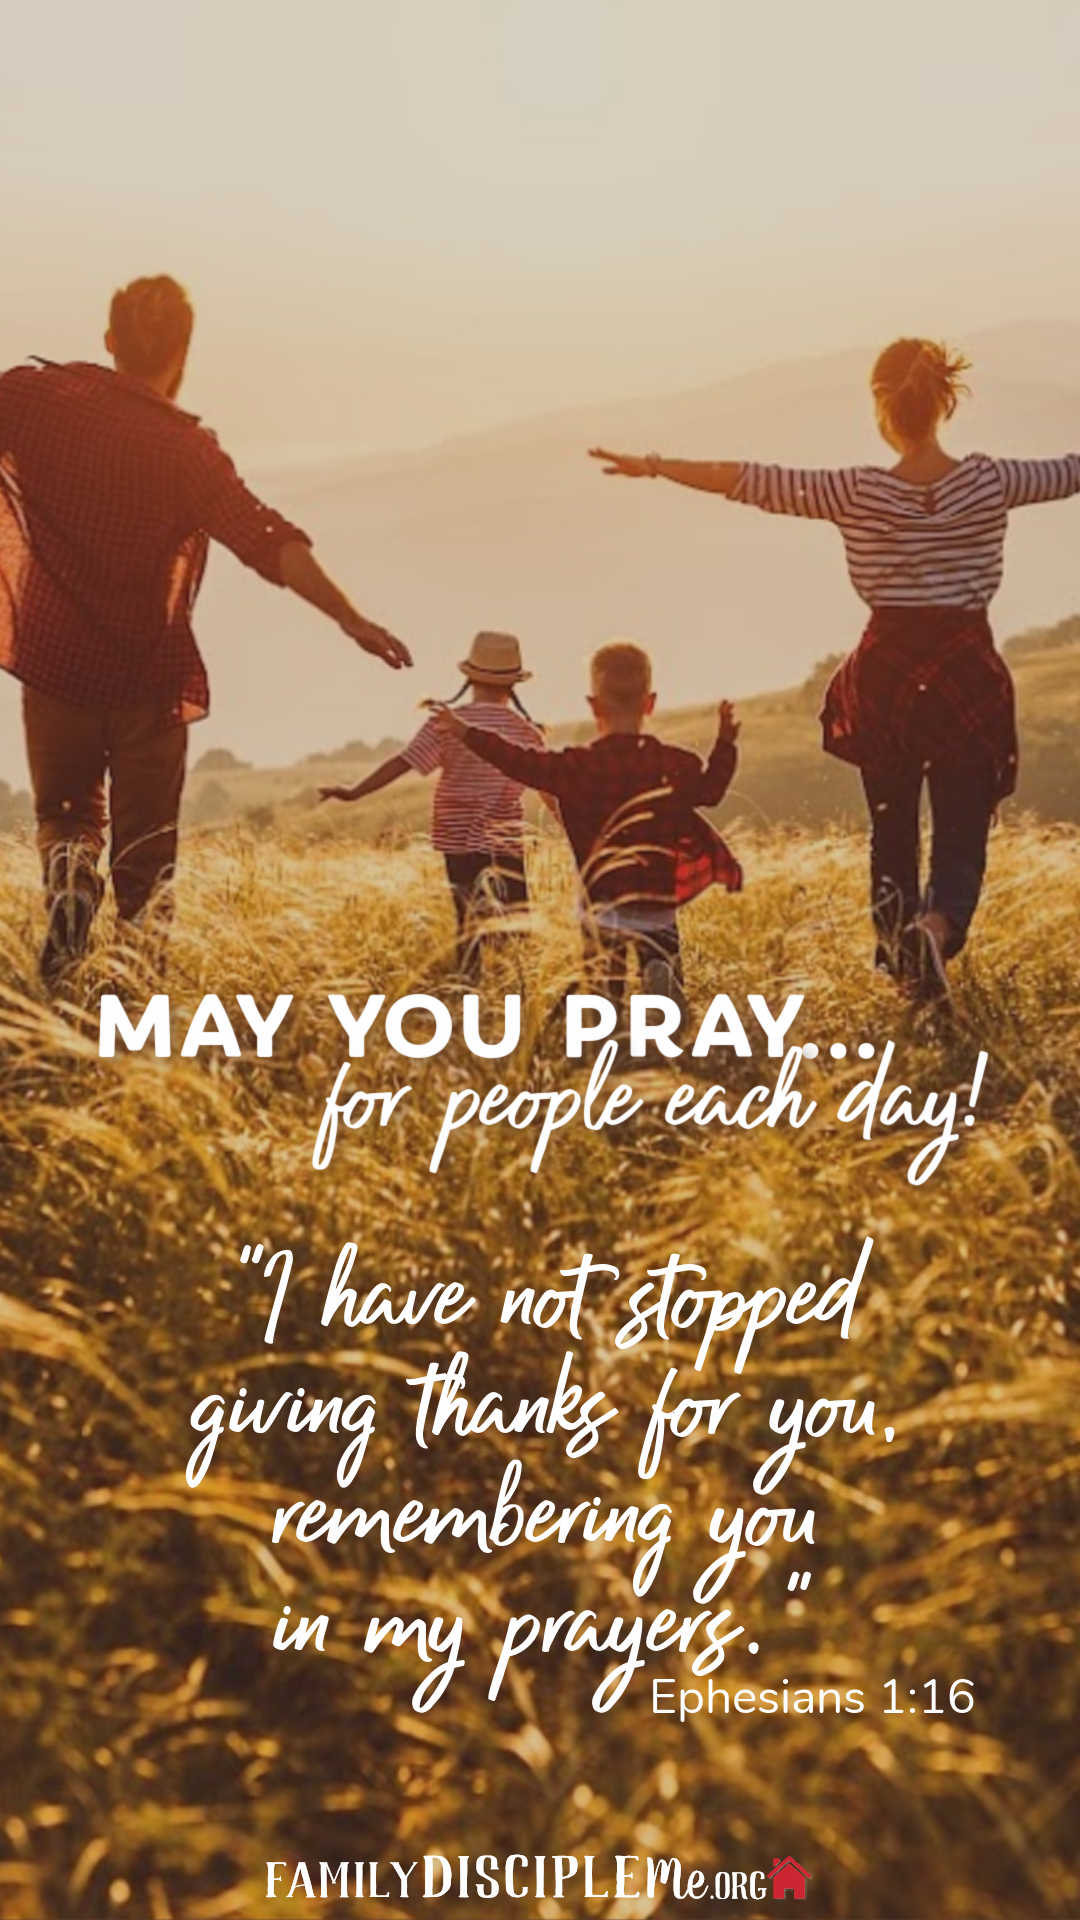 May You Pray for people each day